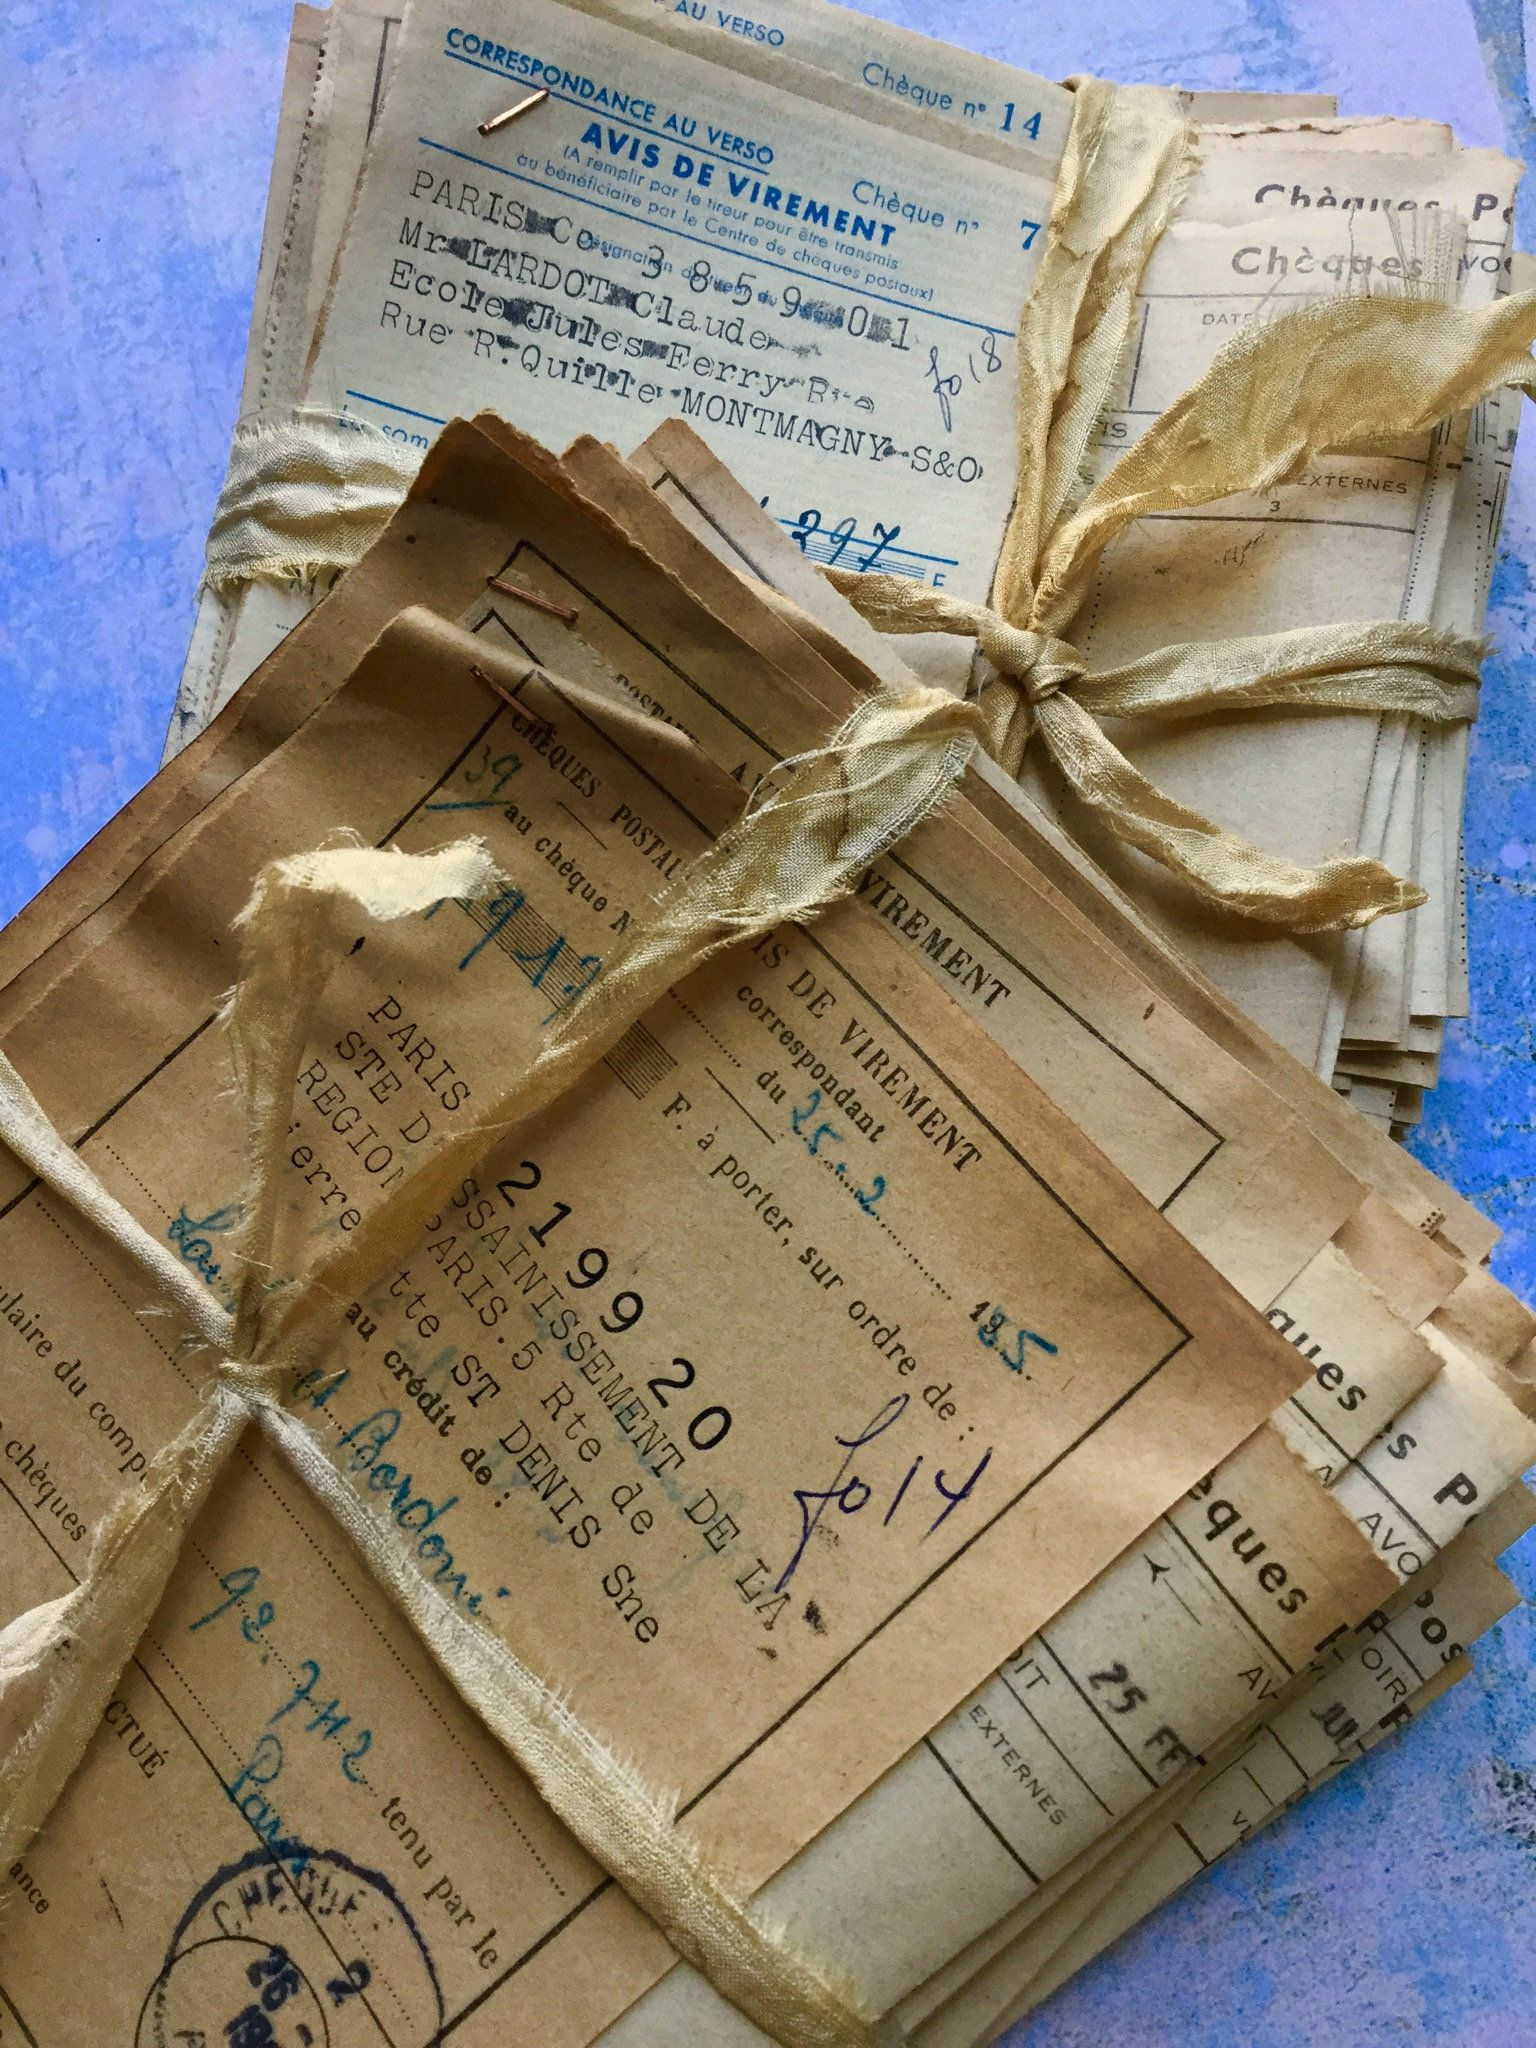 20 French Postal Checks And Receipts Tickets Vintage Junk Journal